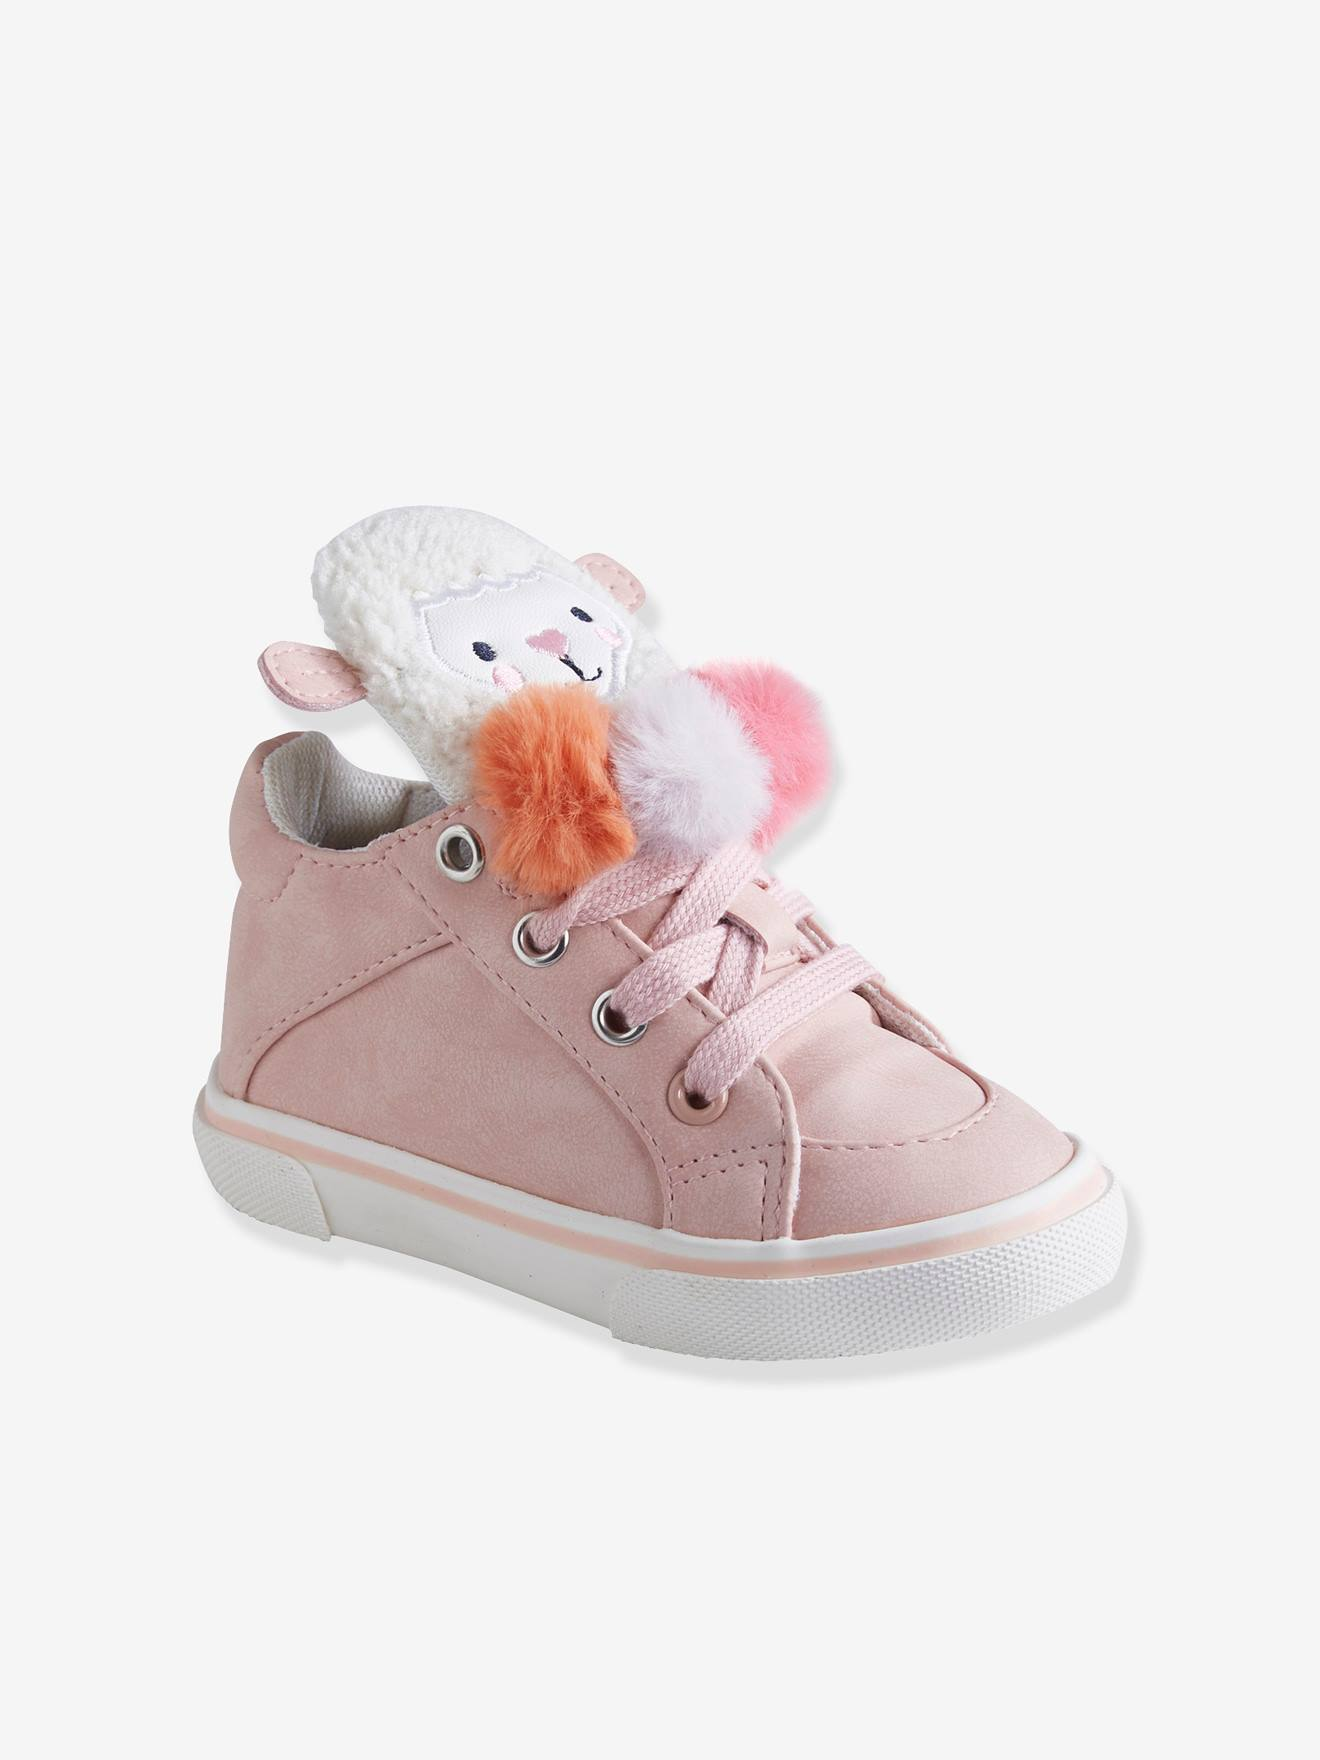 superior quality best sale various styles High Top Trainers for Baby Girls with 3 Pompons - pink light solid, Shoes